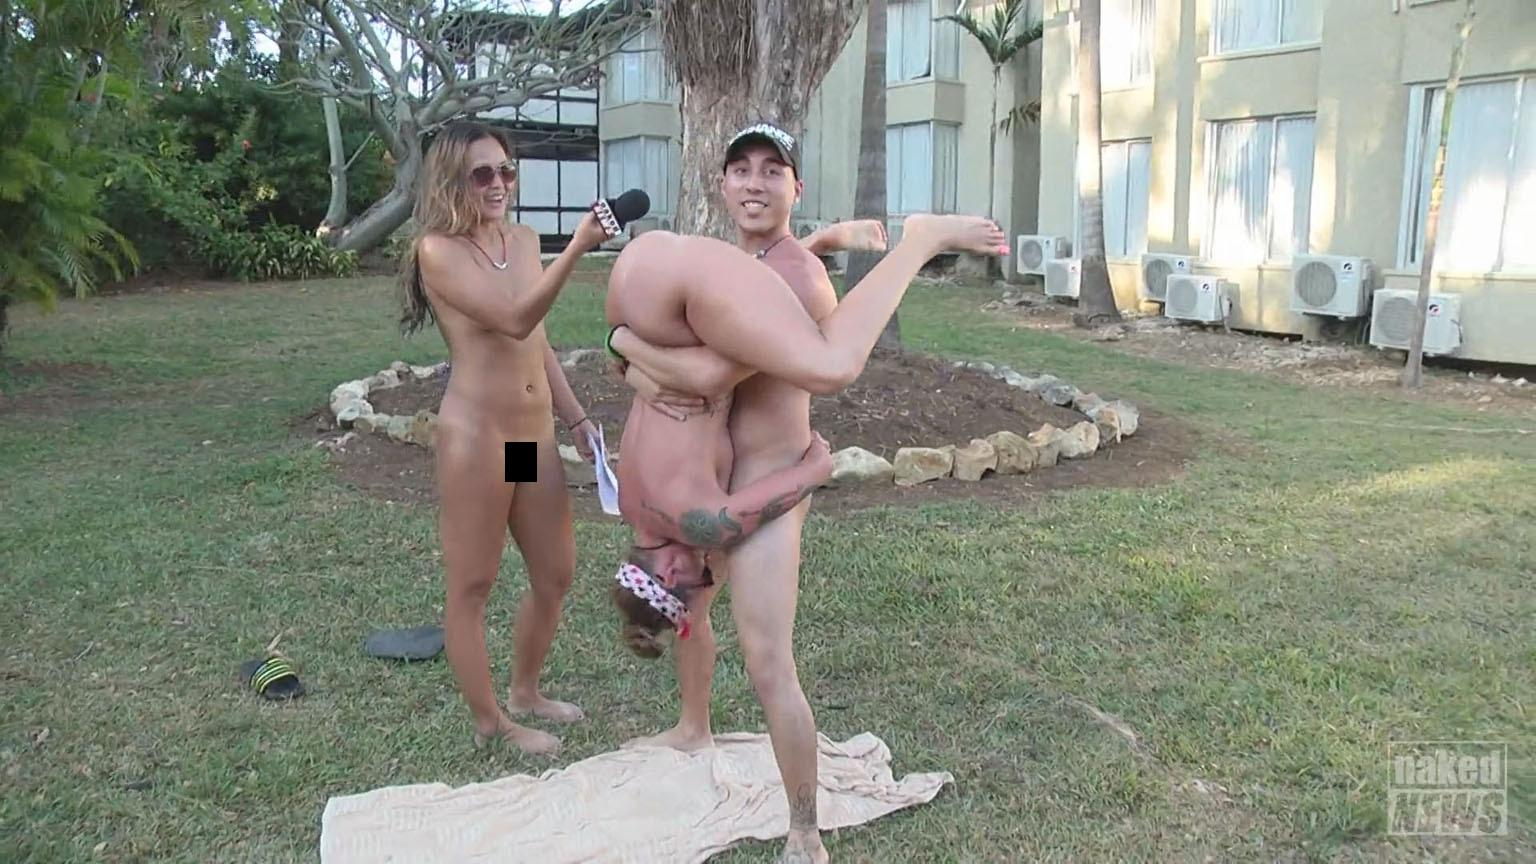 Jamaican sex party and nude